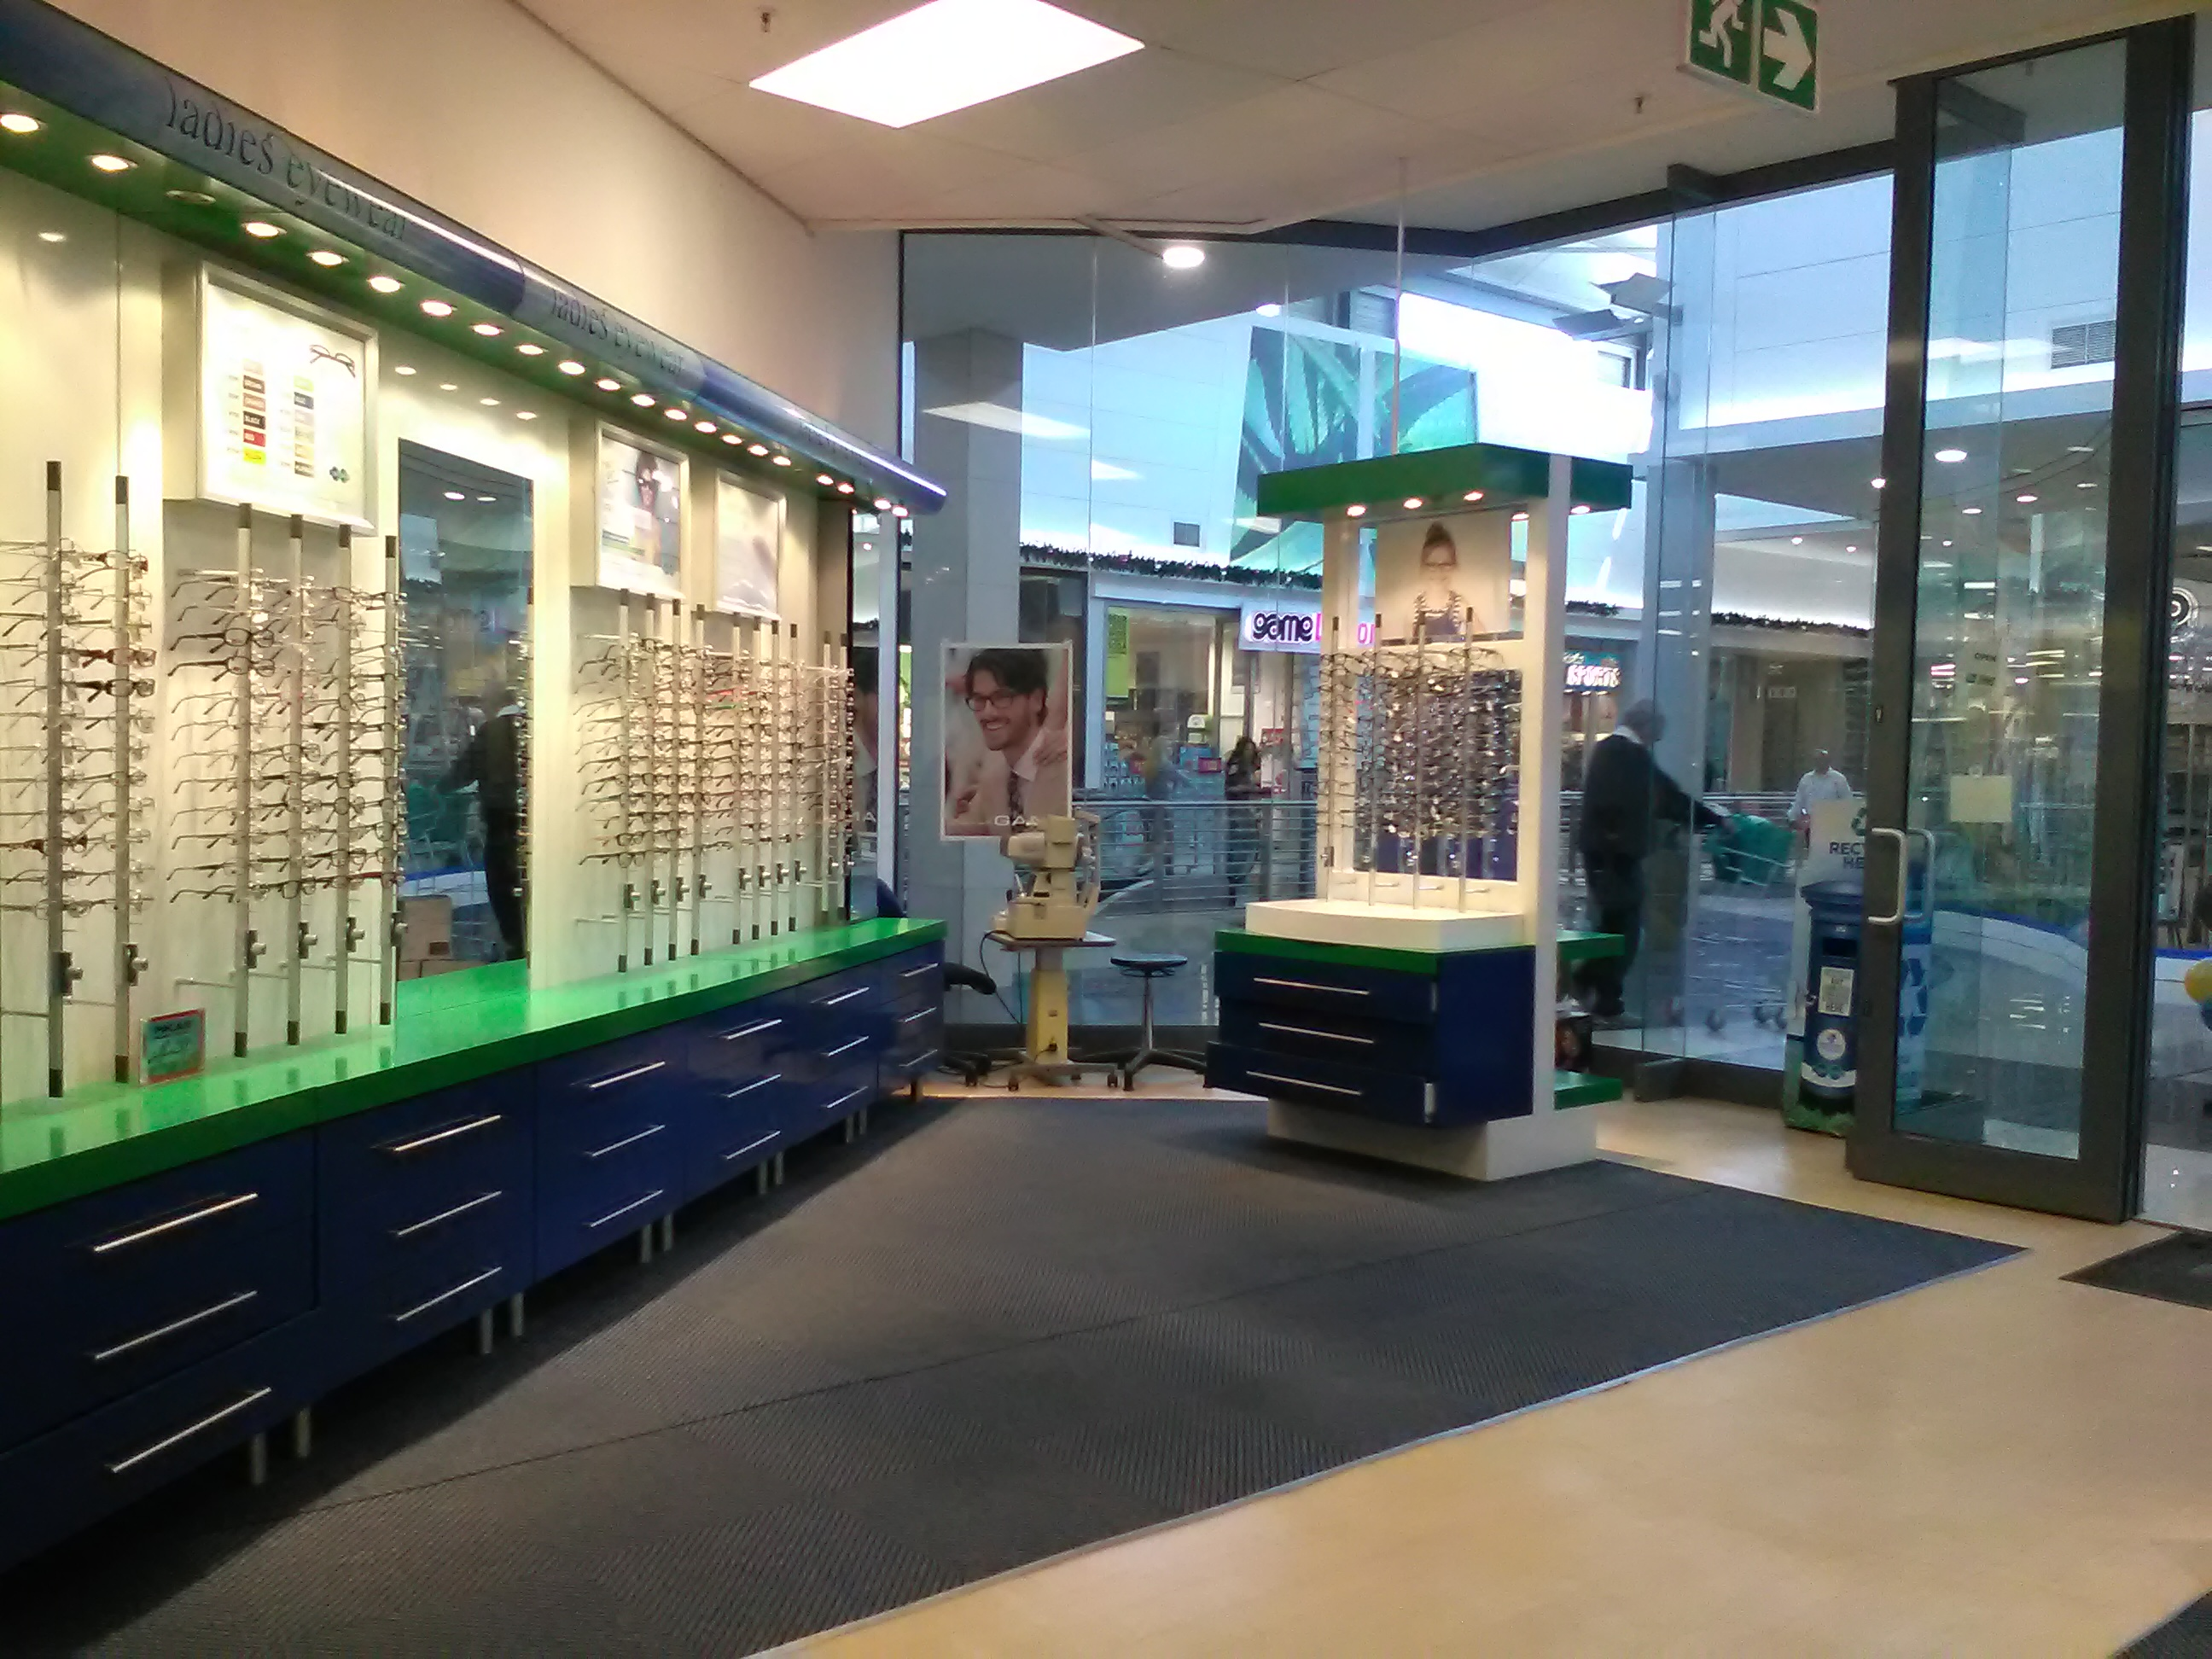 The inside view of our store and display cabinets